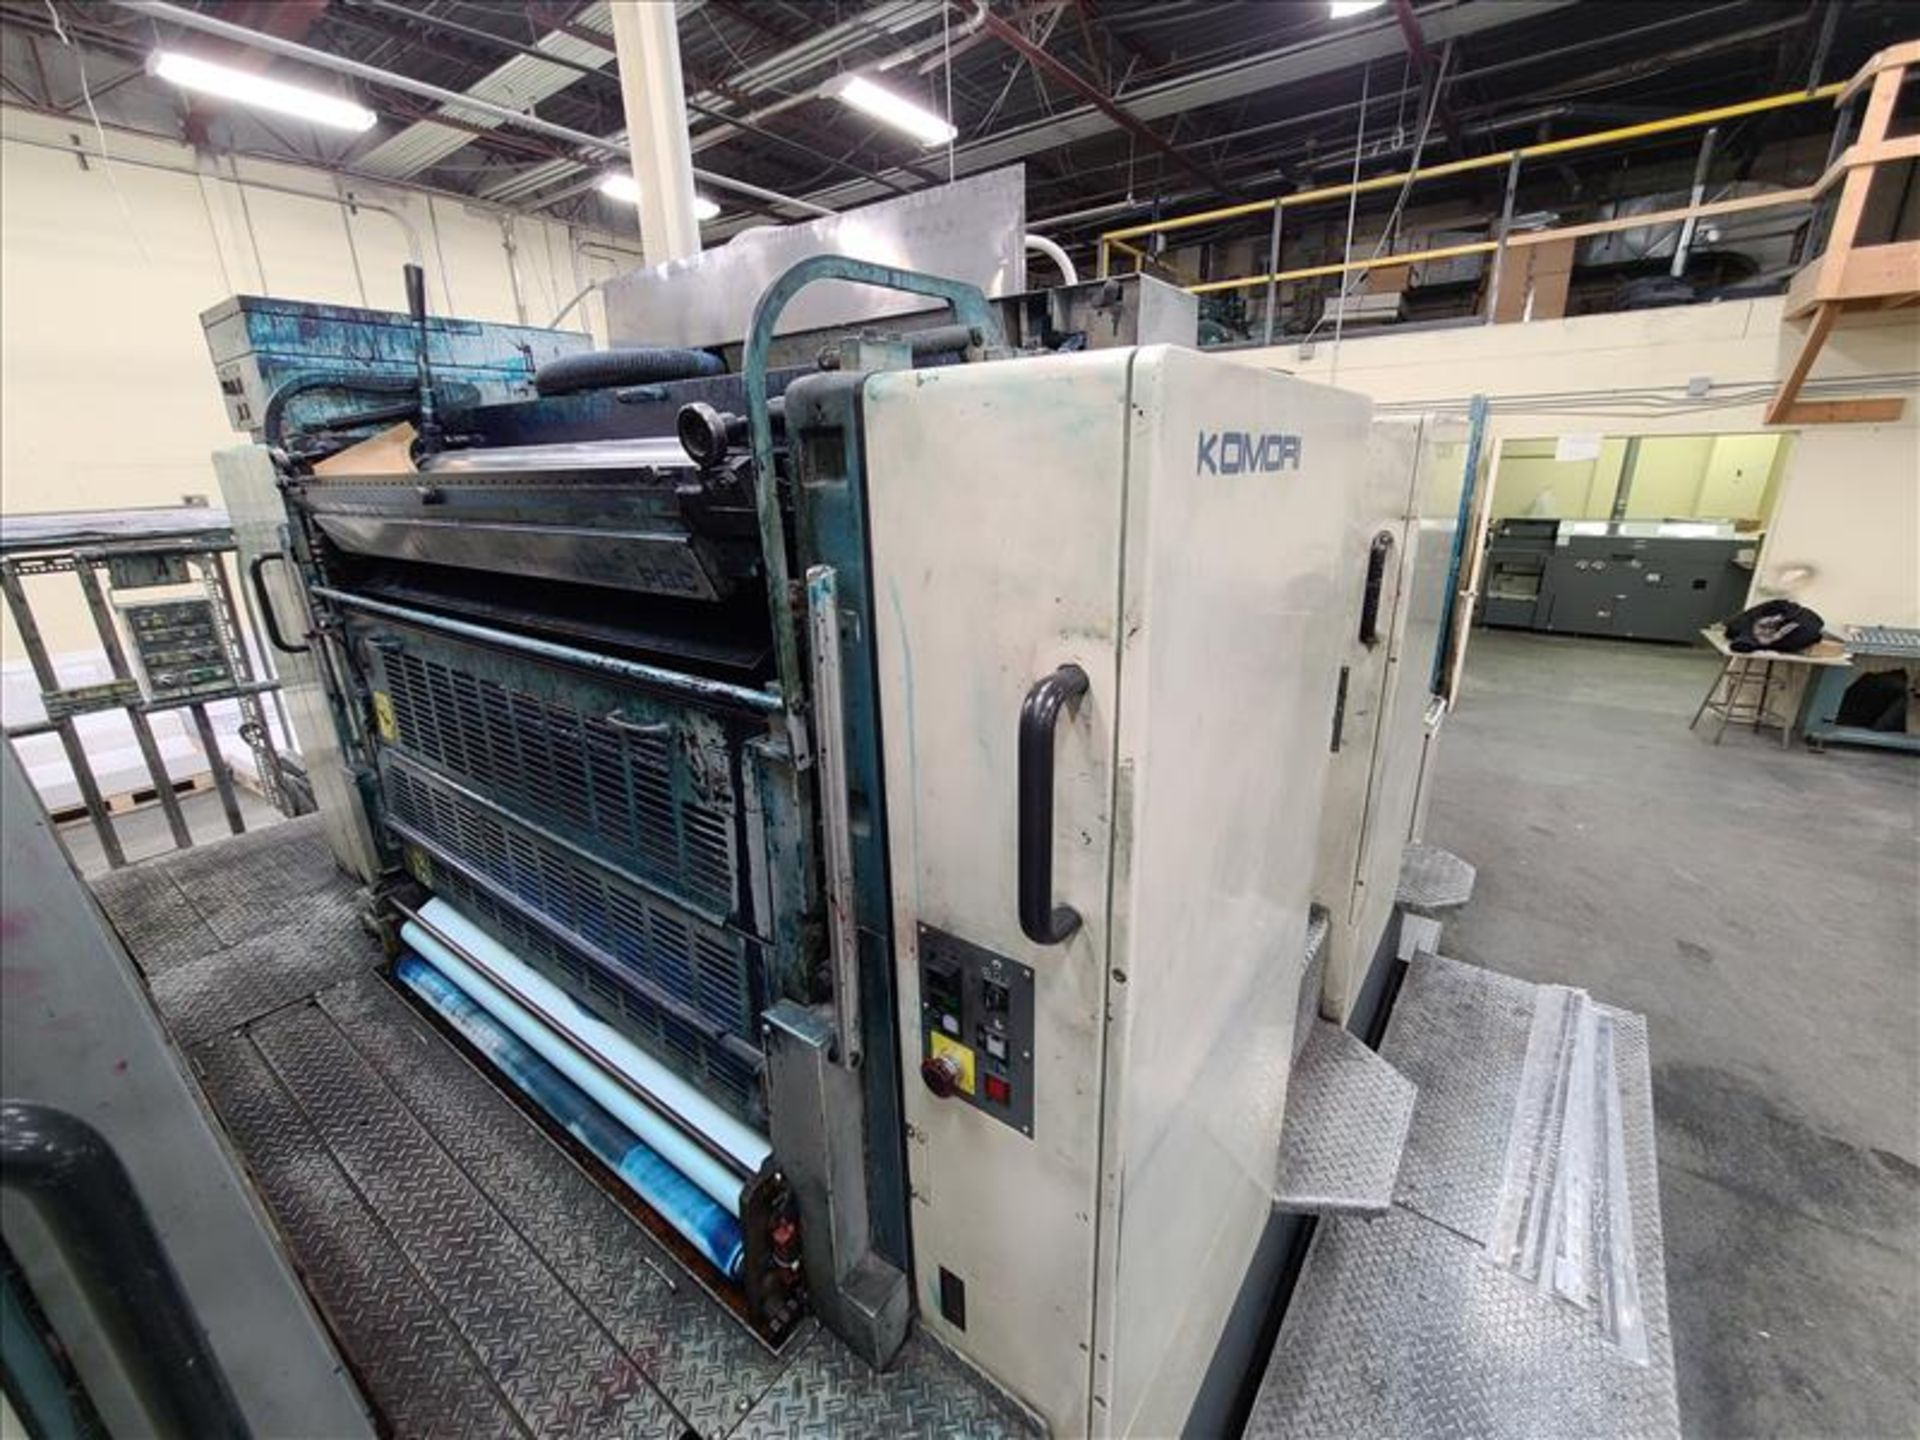 Komori 4-color offset printing press, Series Lithrone 40, model L-440, S/N.2202 approx. 68 - Image 5 of 22